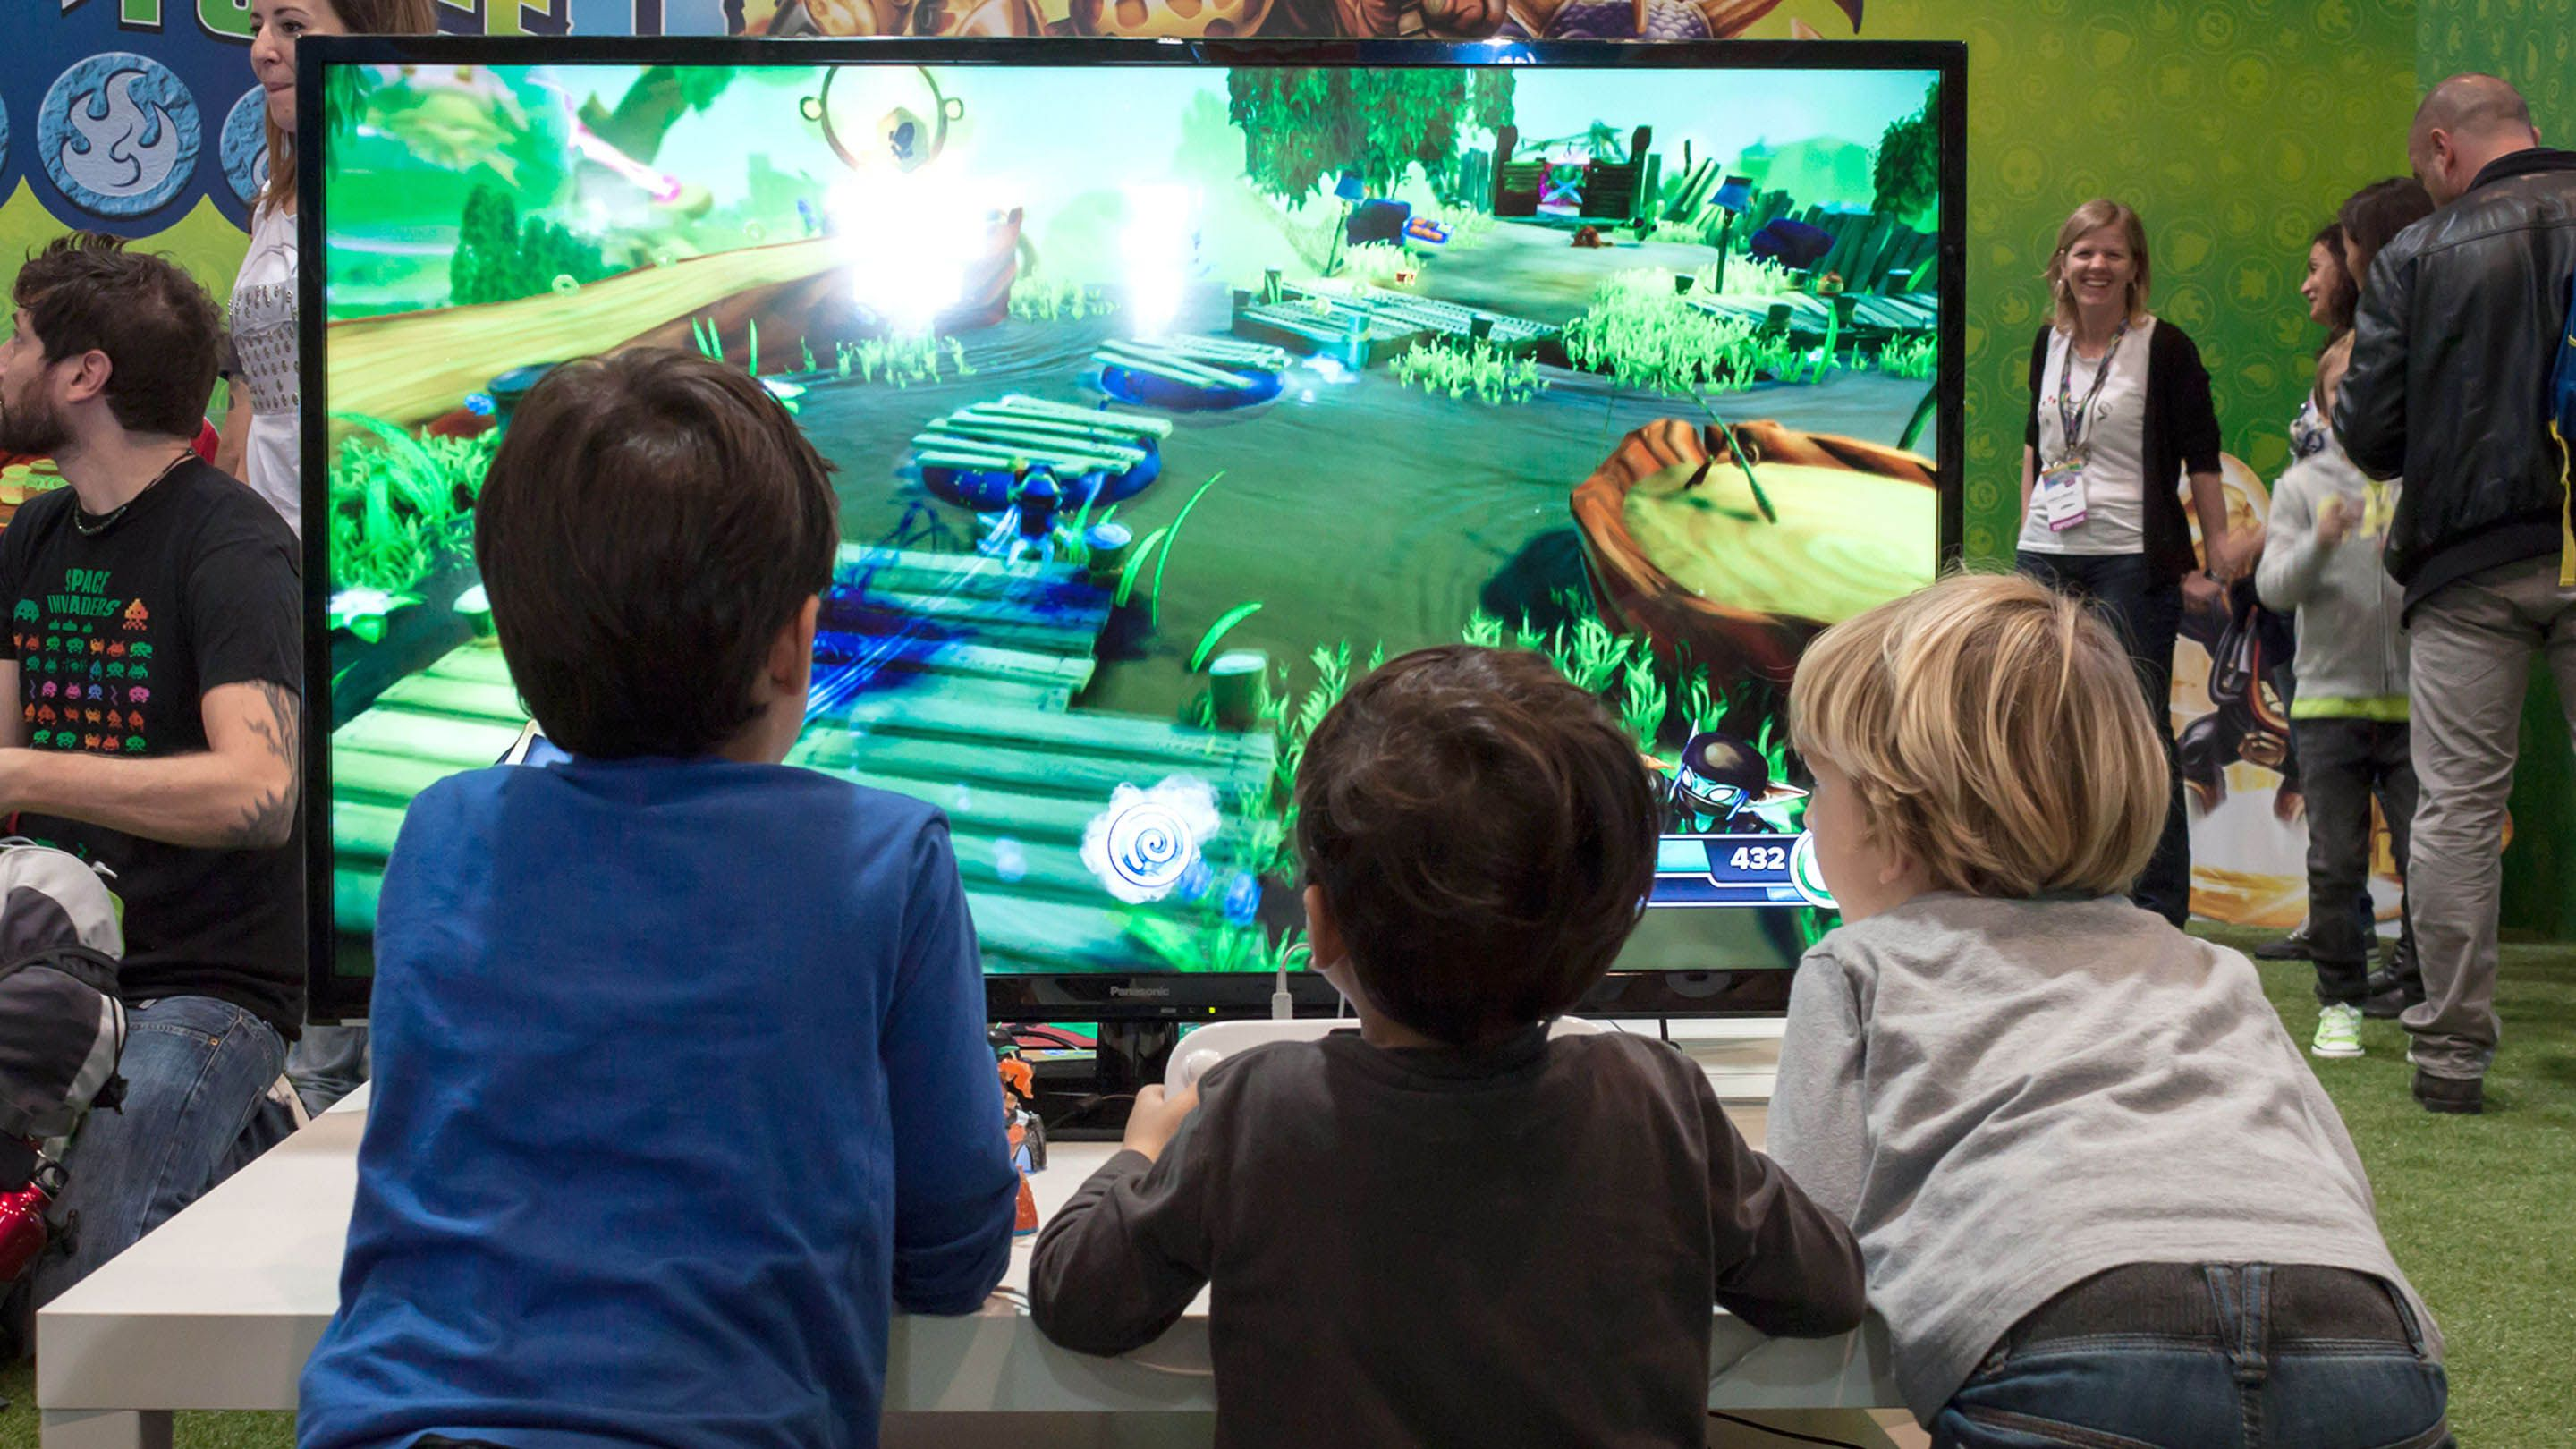 Facing a large monitor, three elementary school-aged boys play a video game.